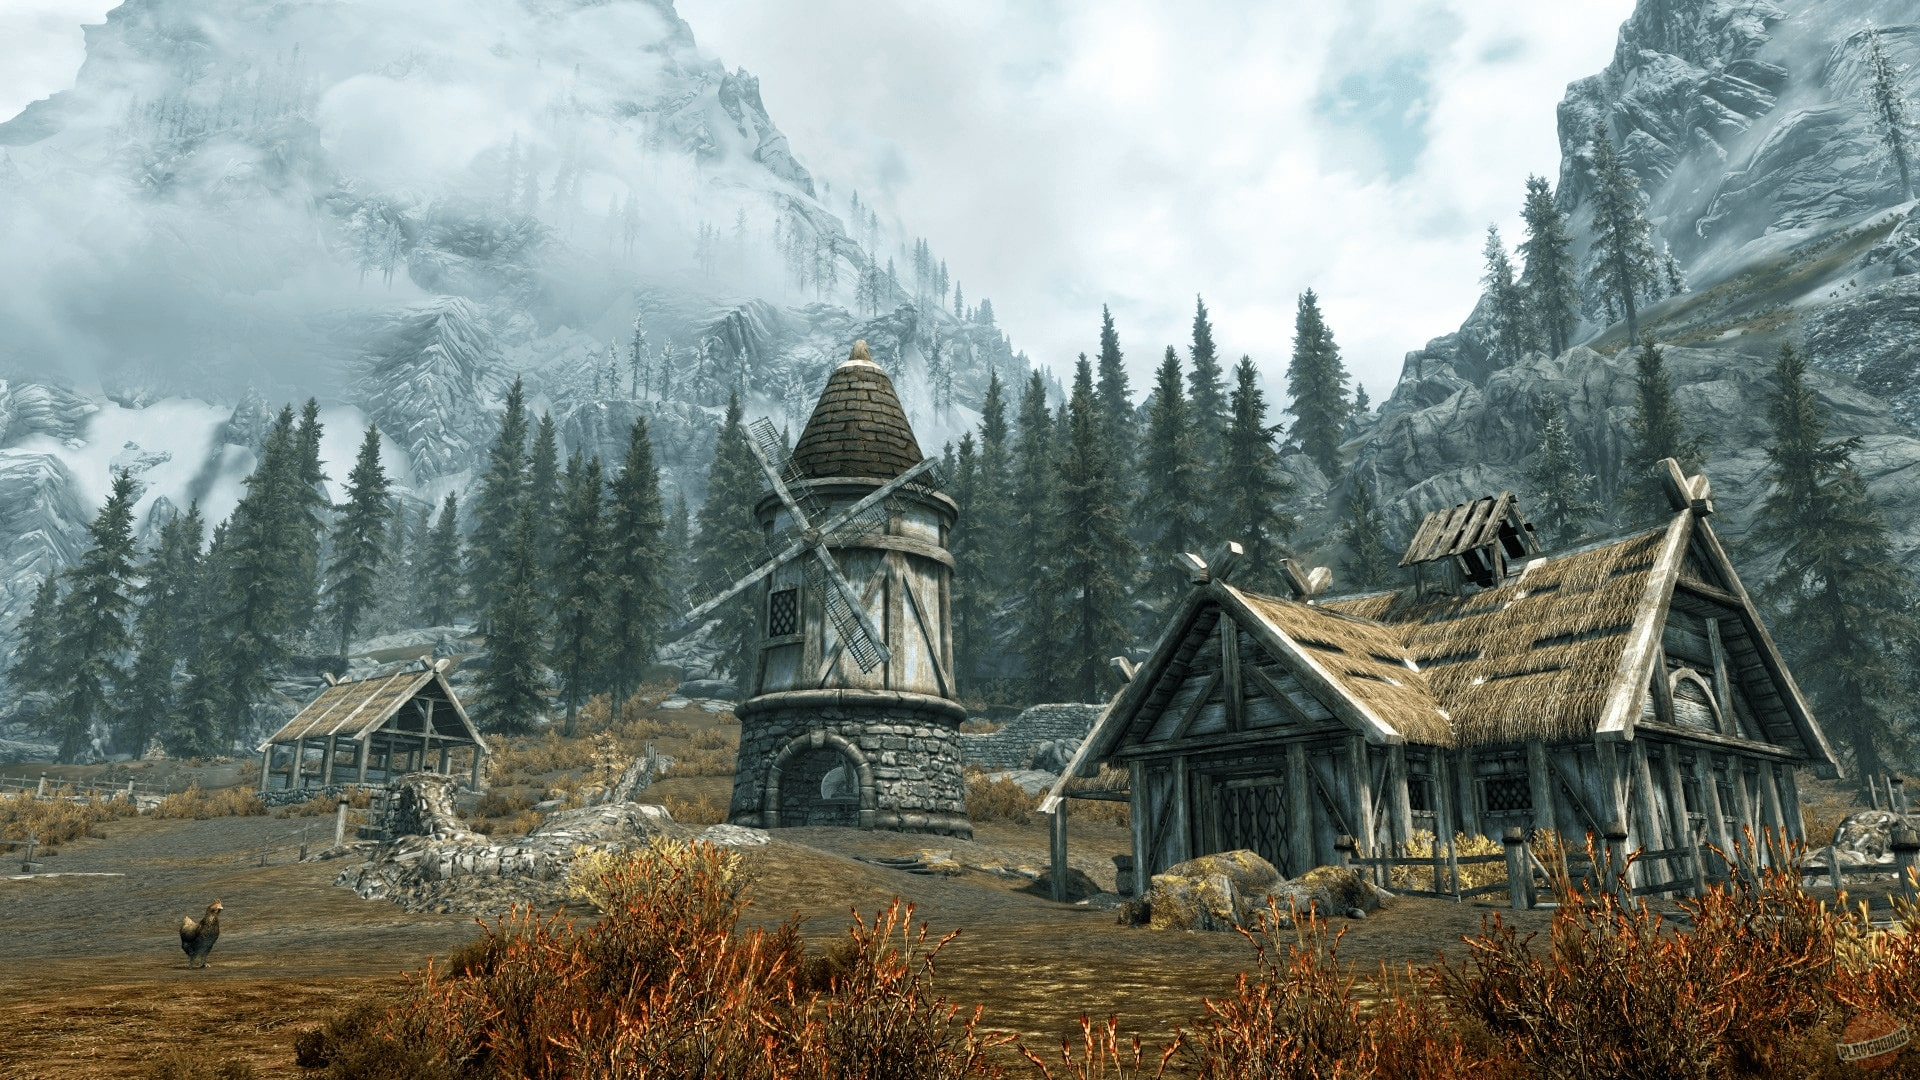 Every trip to the Elder Scrolls: Skyrim turns into a long journey filled with many interesting stories